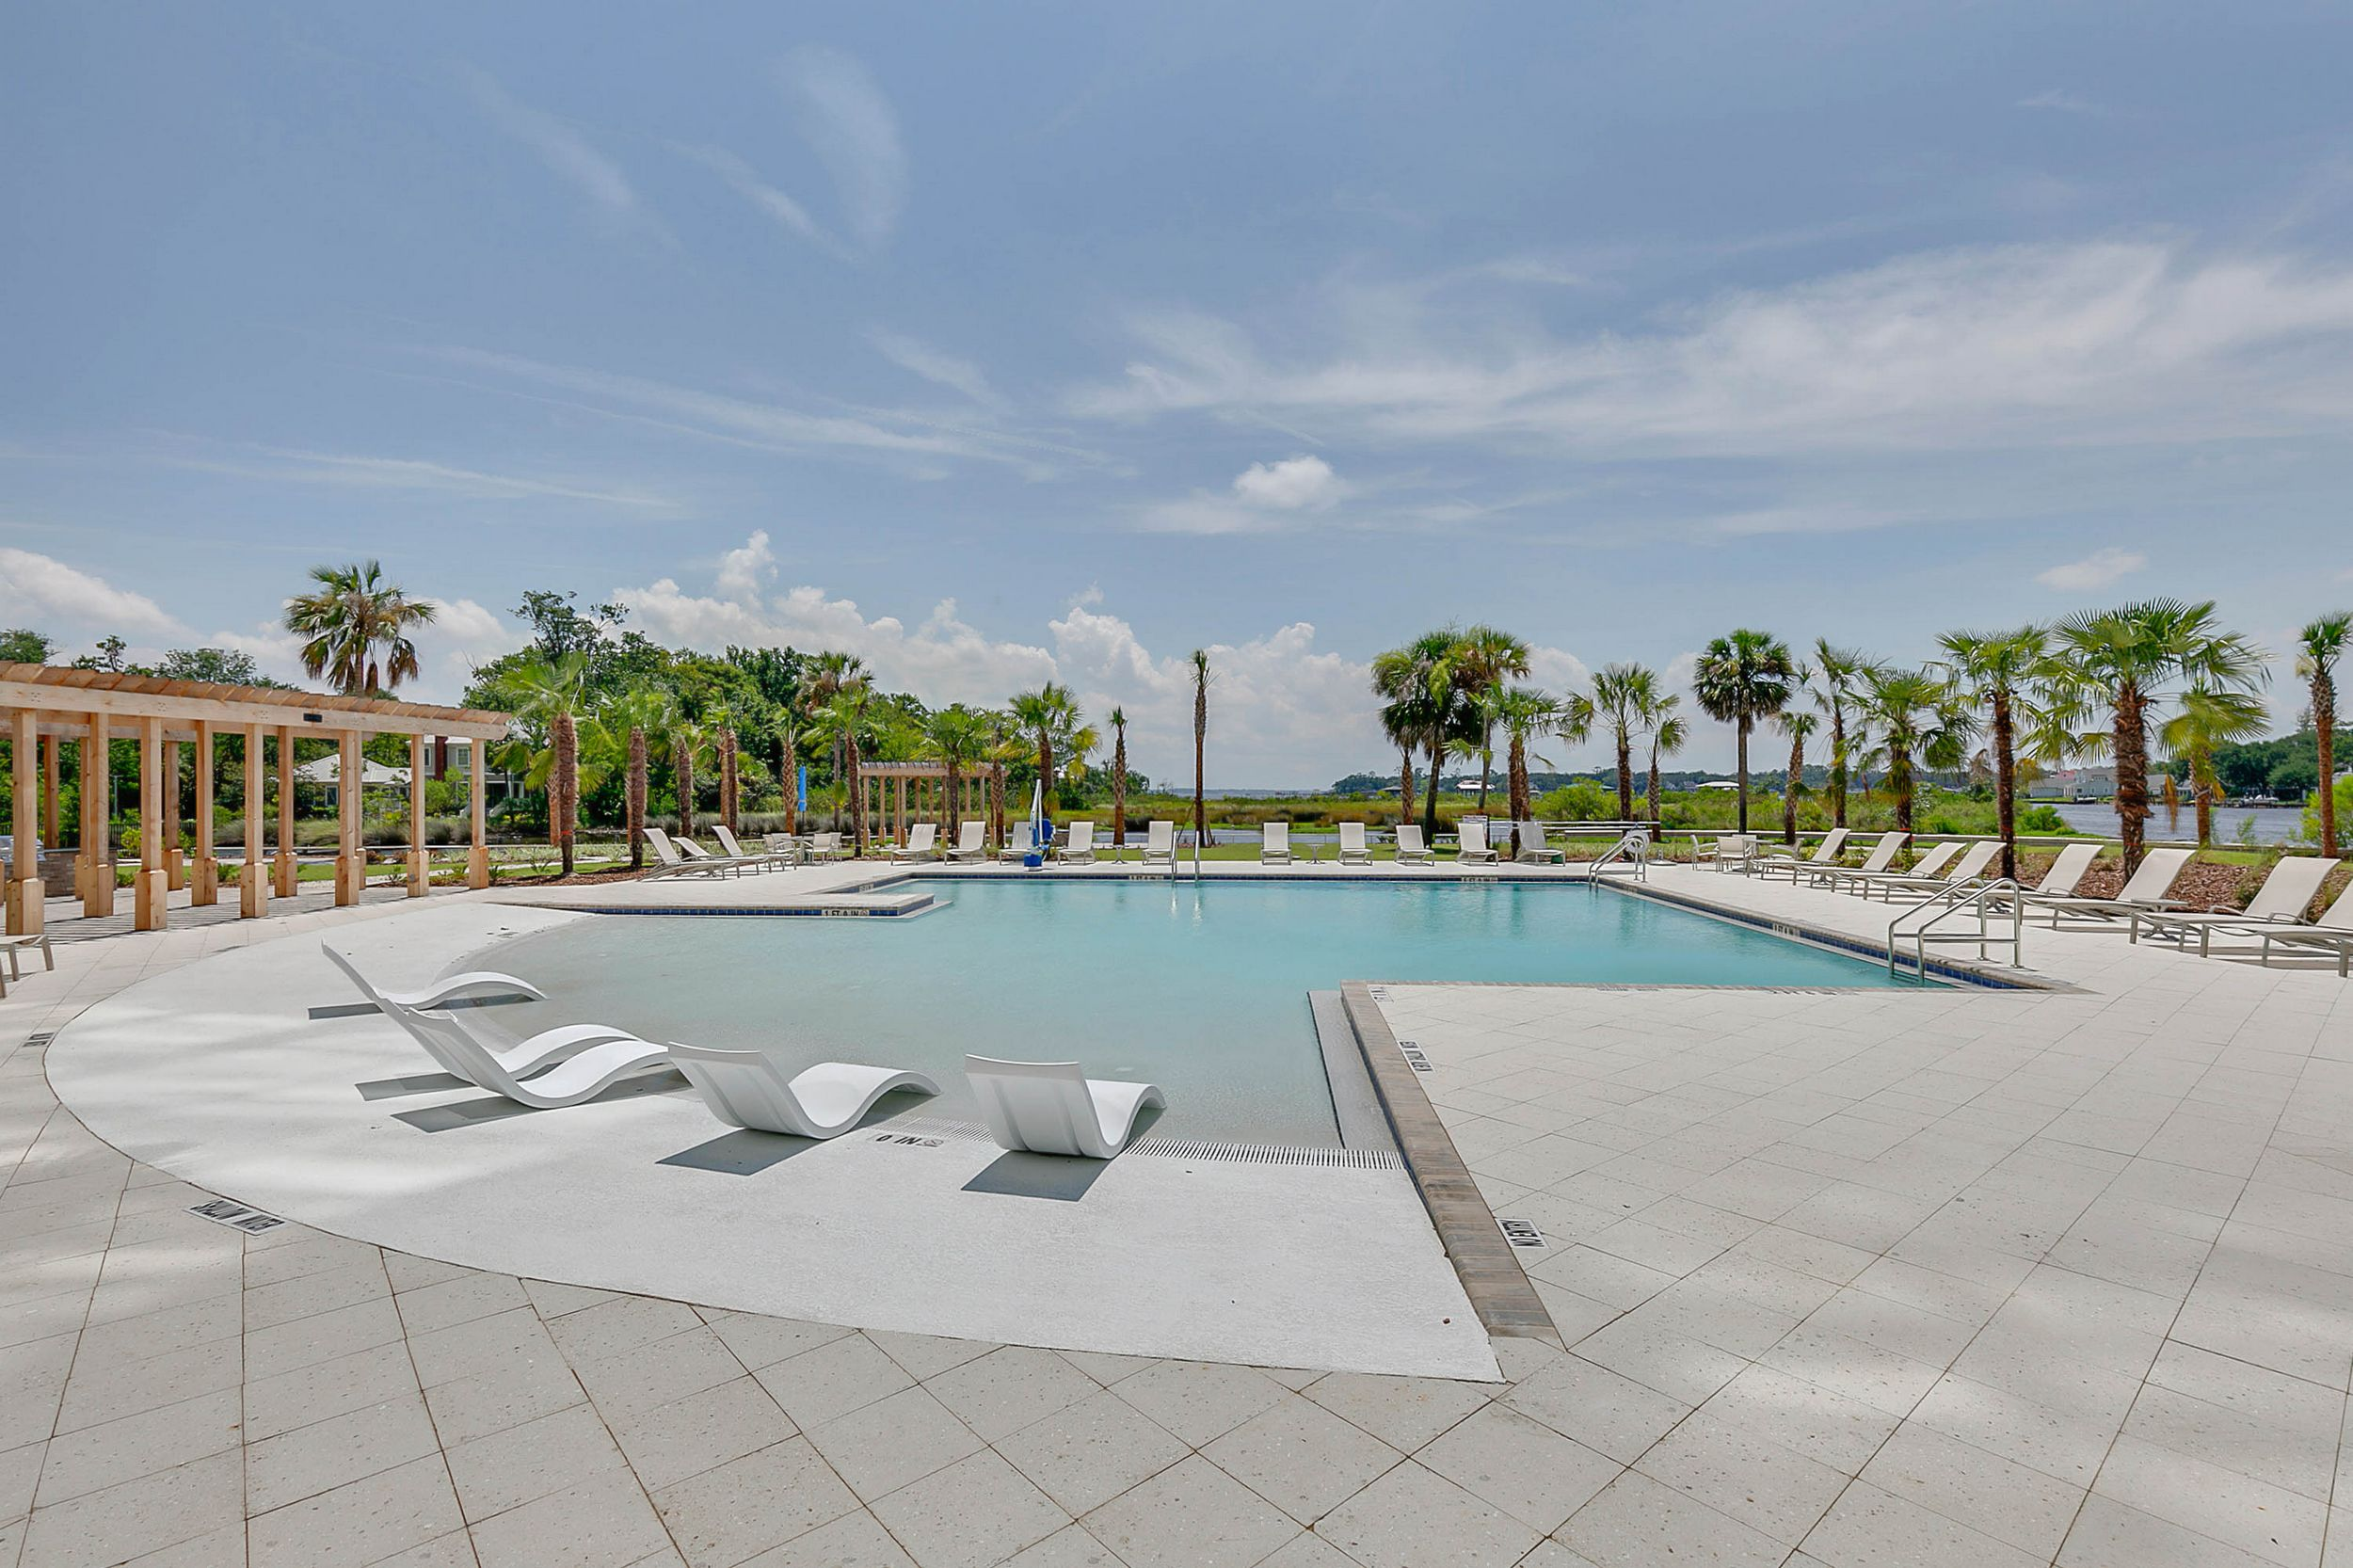 Swimming pool with sundeck and seating